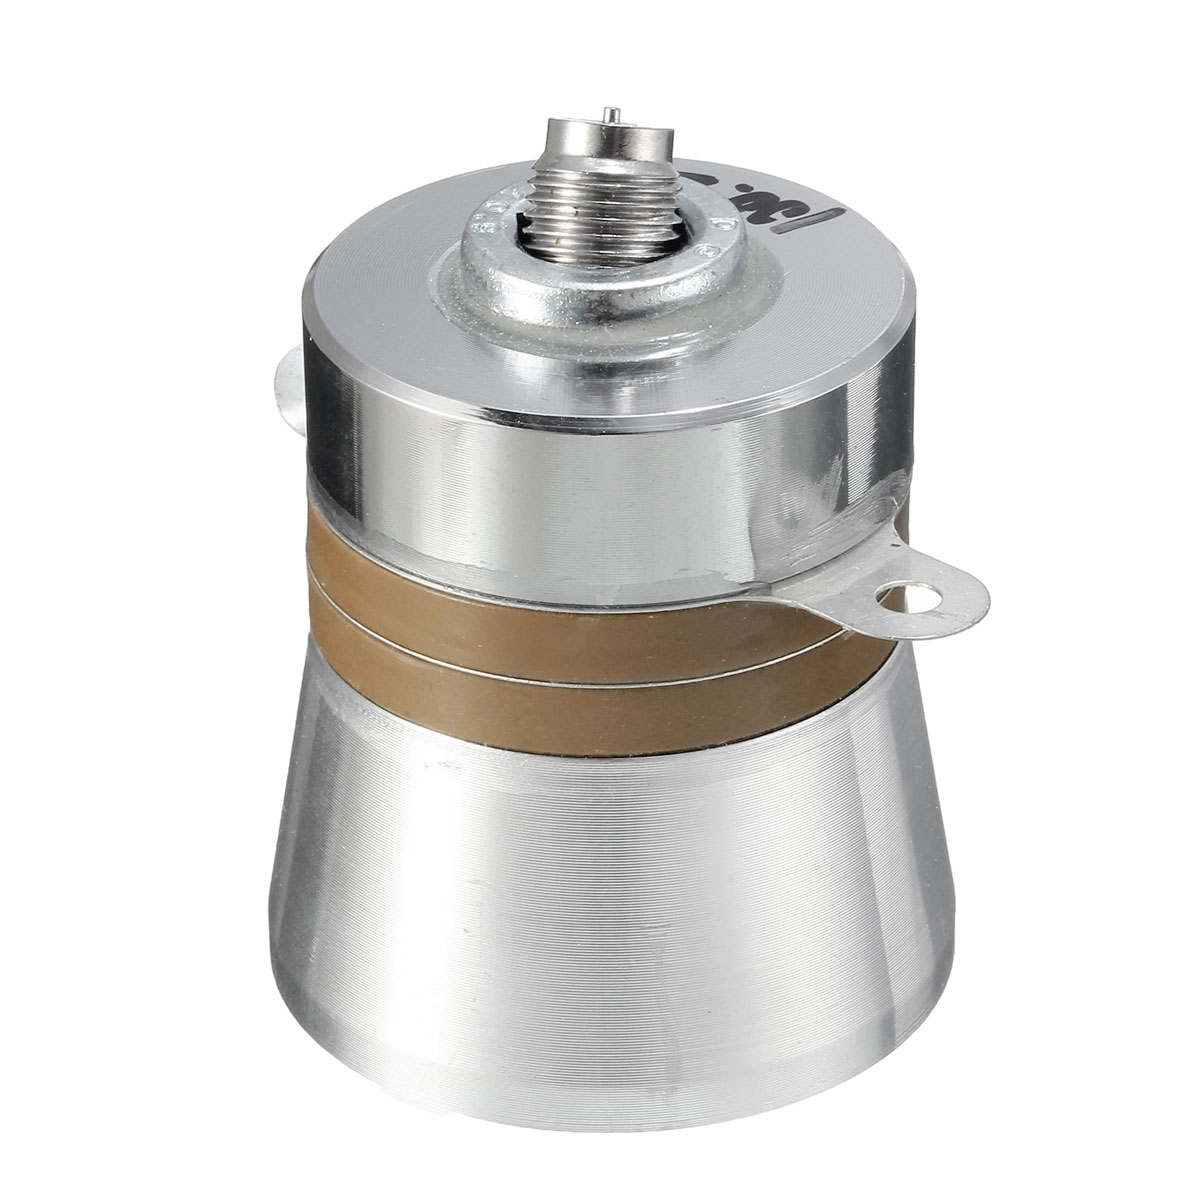 High Conversion Efficiency 60W 40KHz Ultrasonic Piezoelectric Transducer Cleaner Medical Model